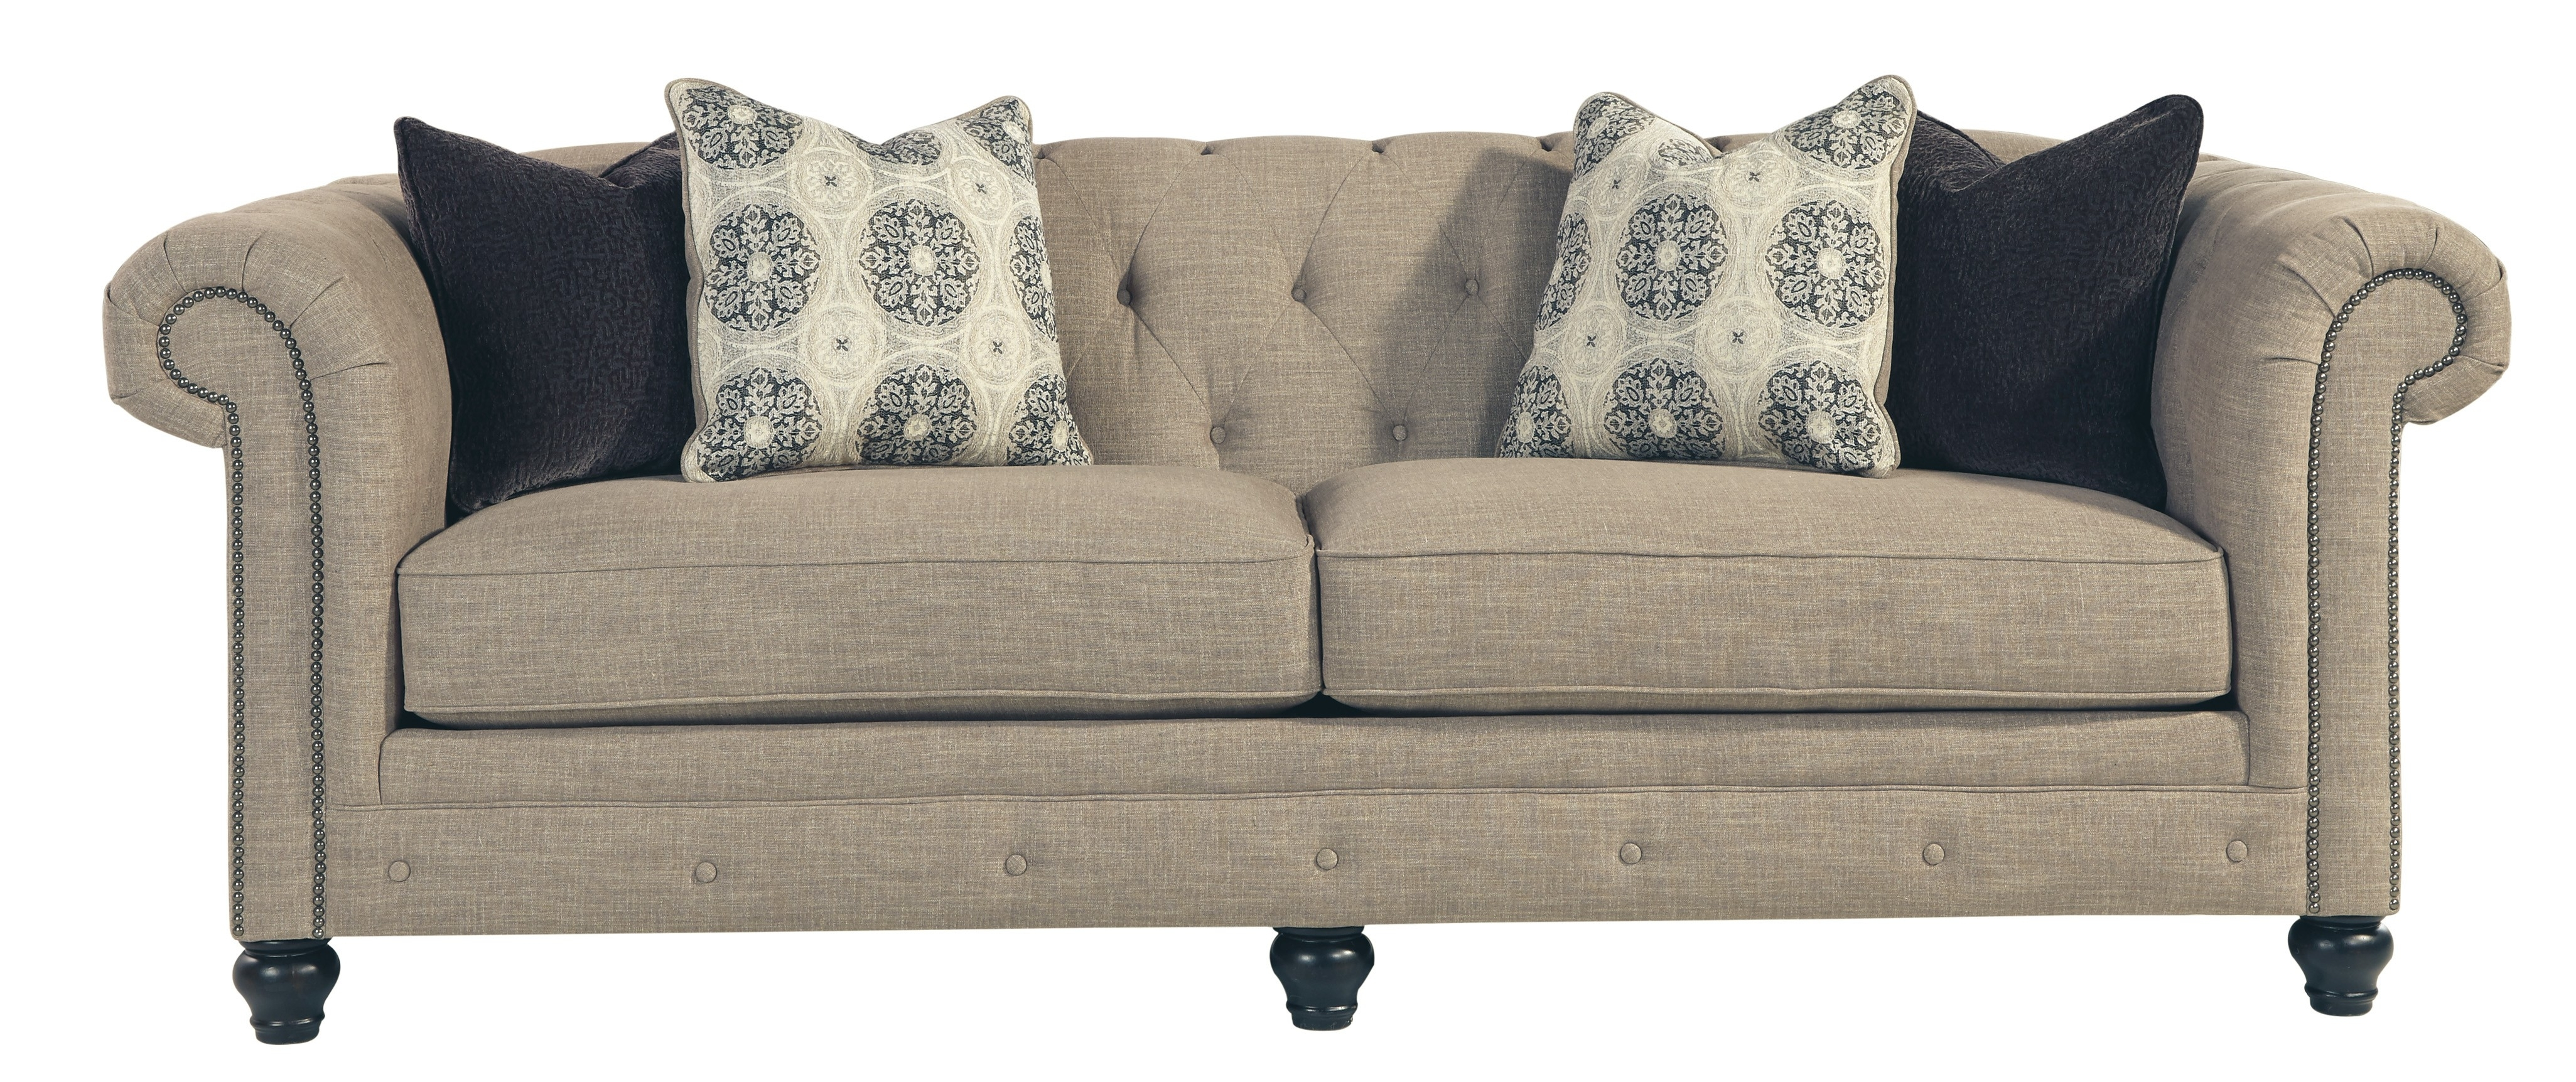 Ashley 9940238 Azlyn Tufted Back Sofa With Sepia Tone Fabric Uphostery Intended For Ashley Tufted Sofas (View 2 of 10)